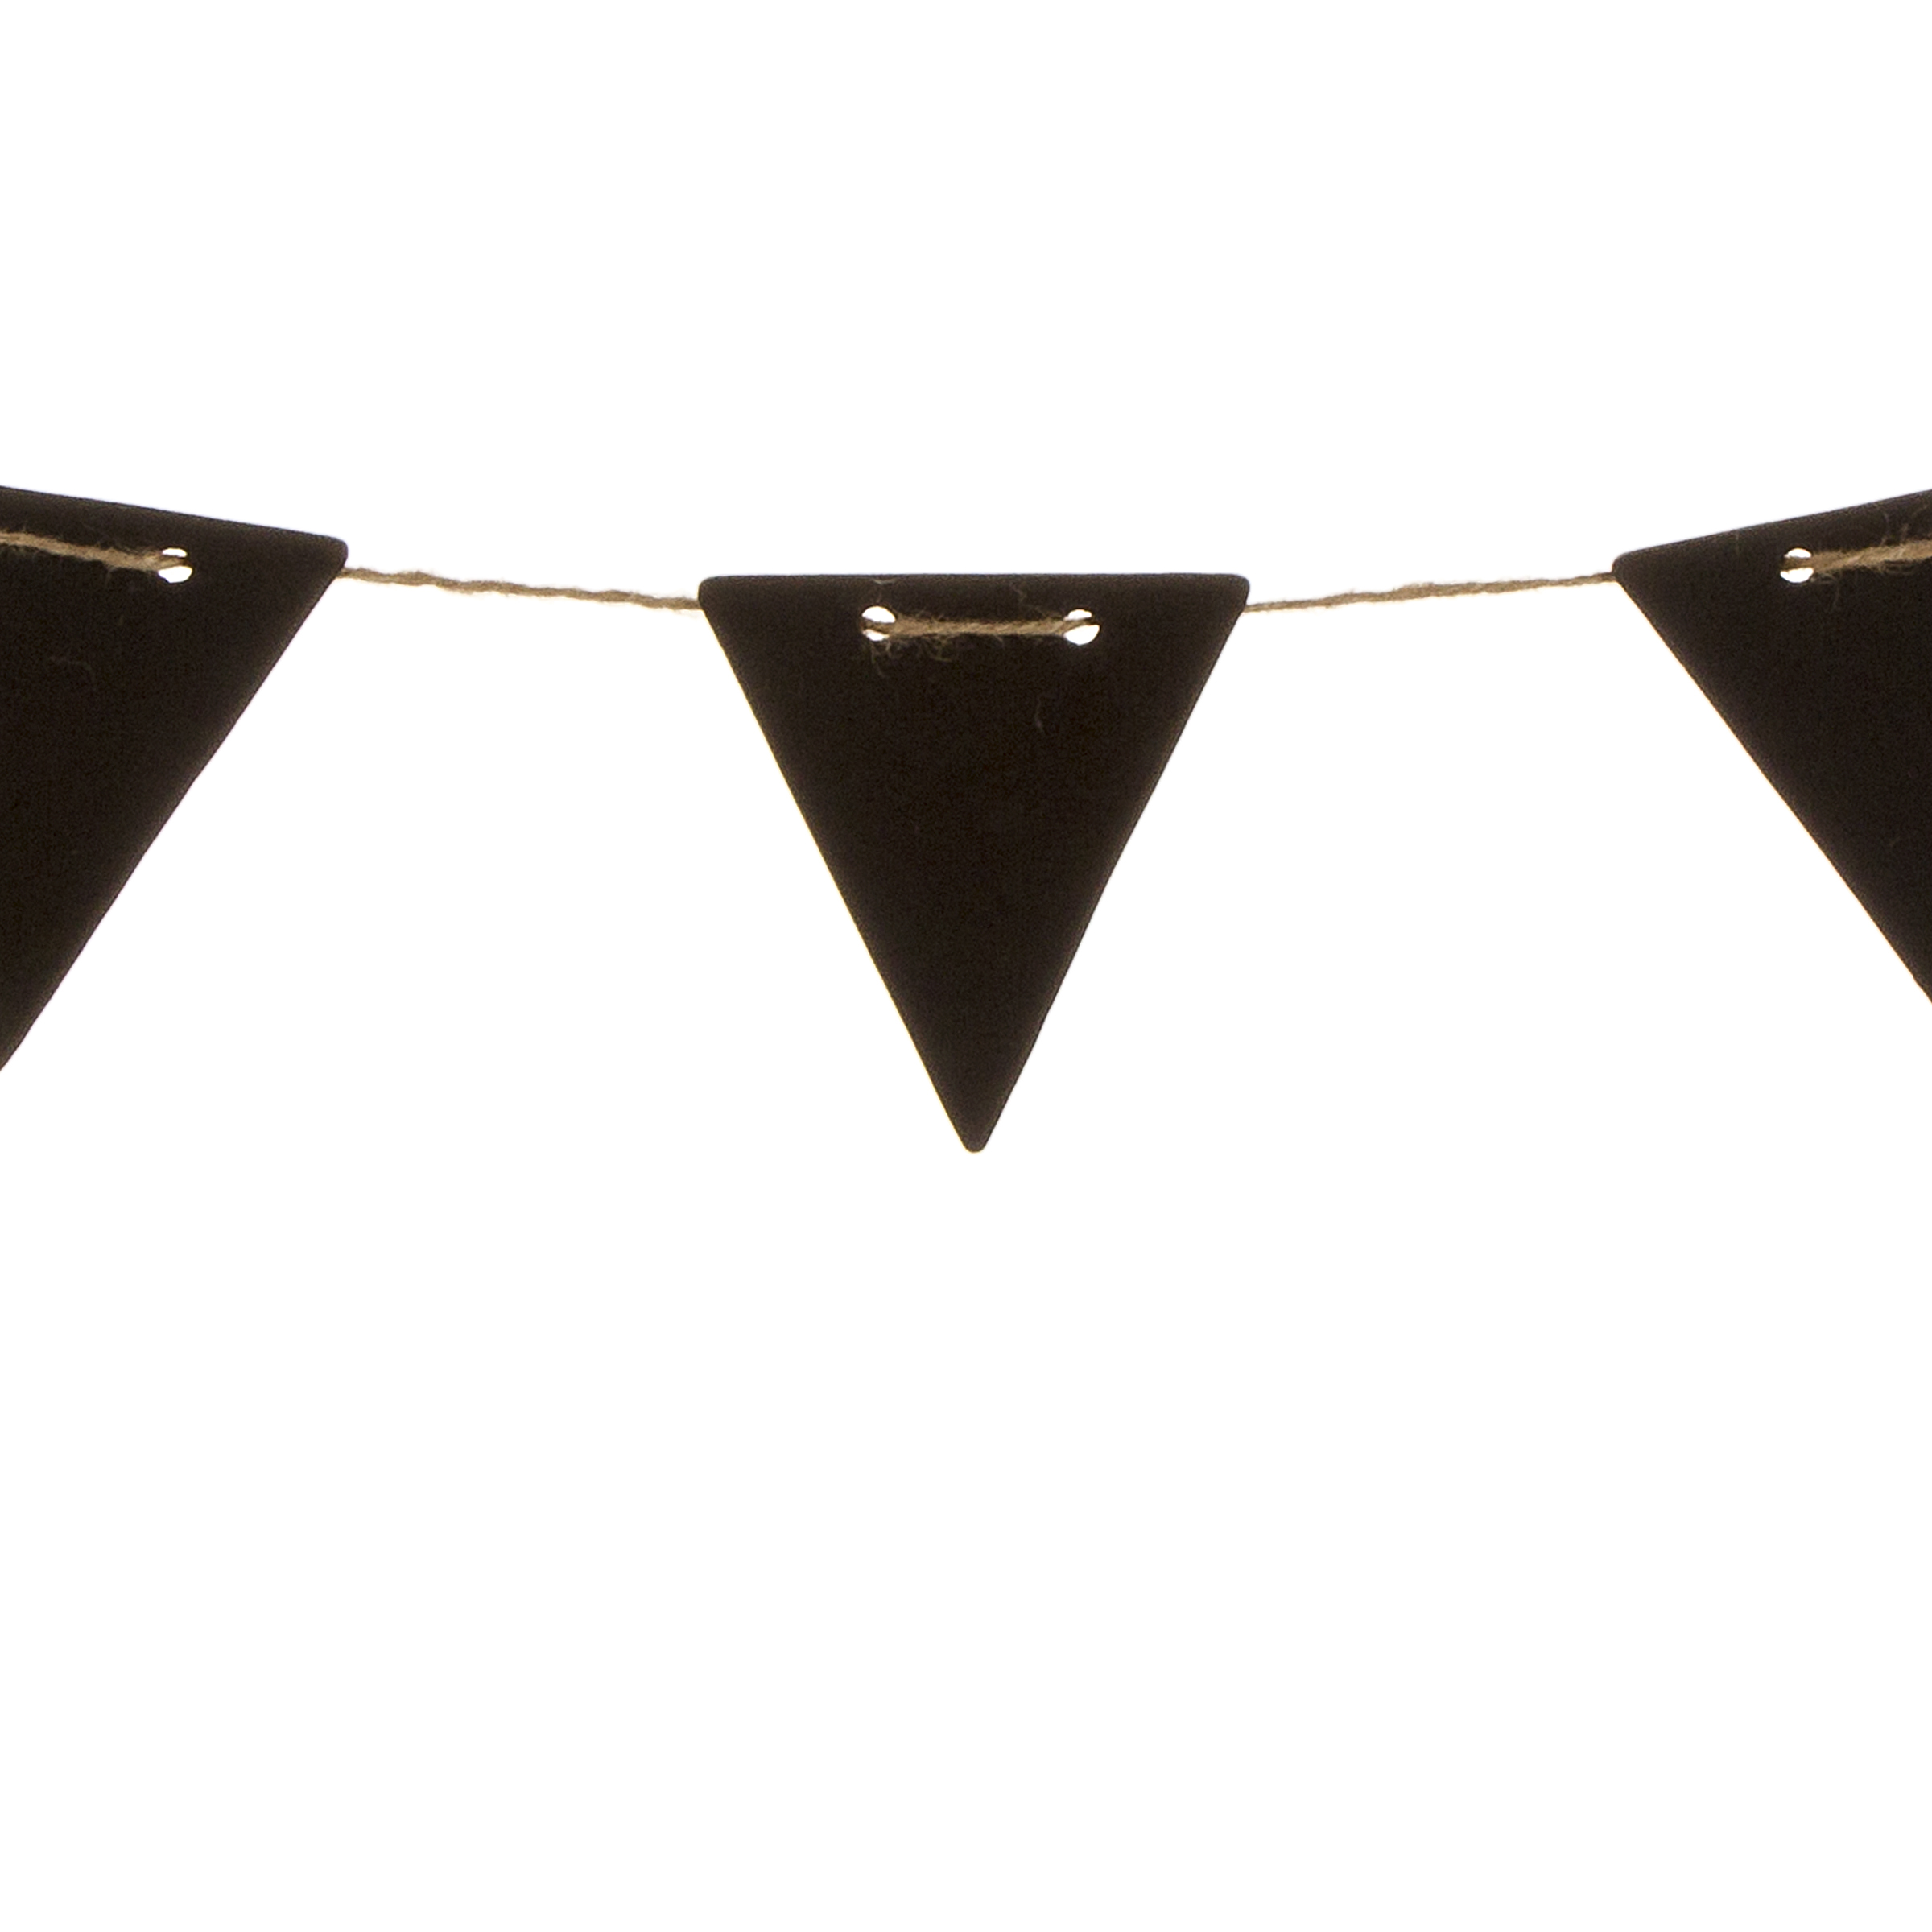 Chalkboard Triangle Banner Shapes w/Twine